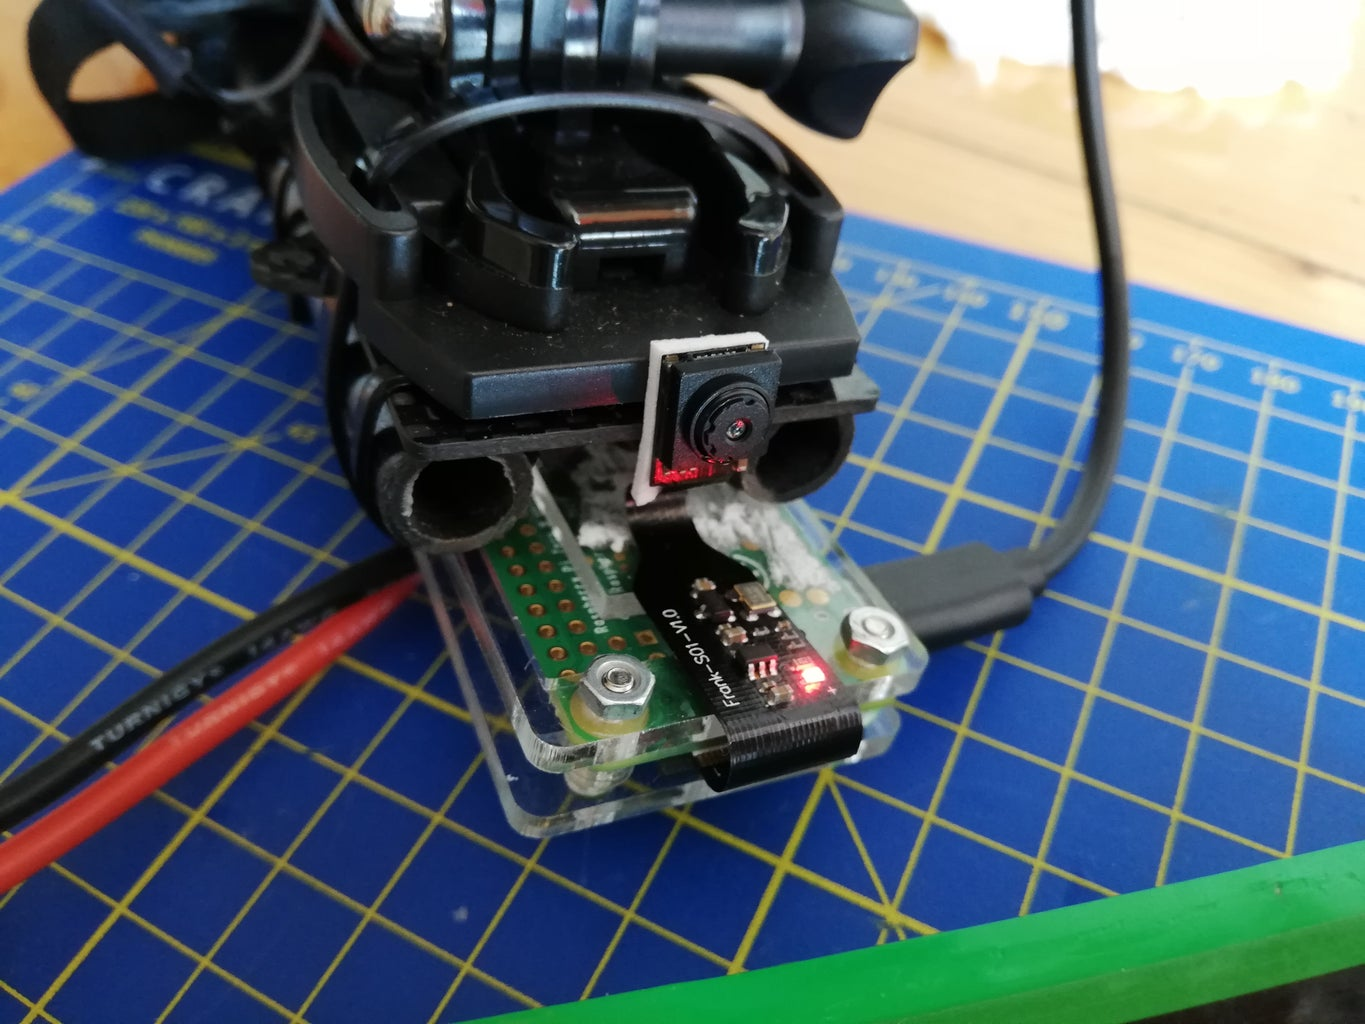 Installing the RPi Zero W on the Drone